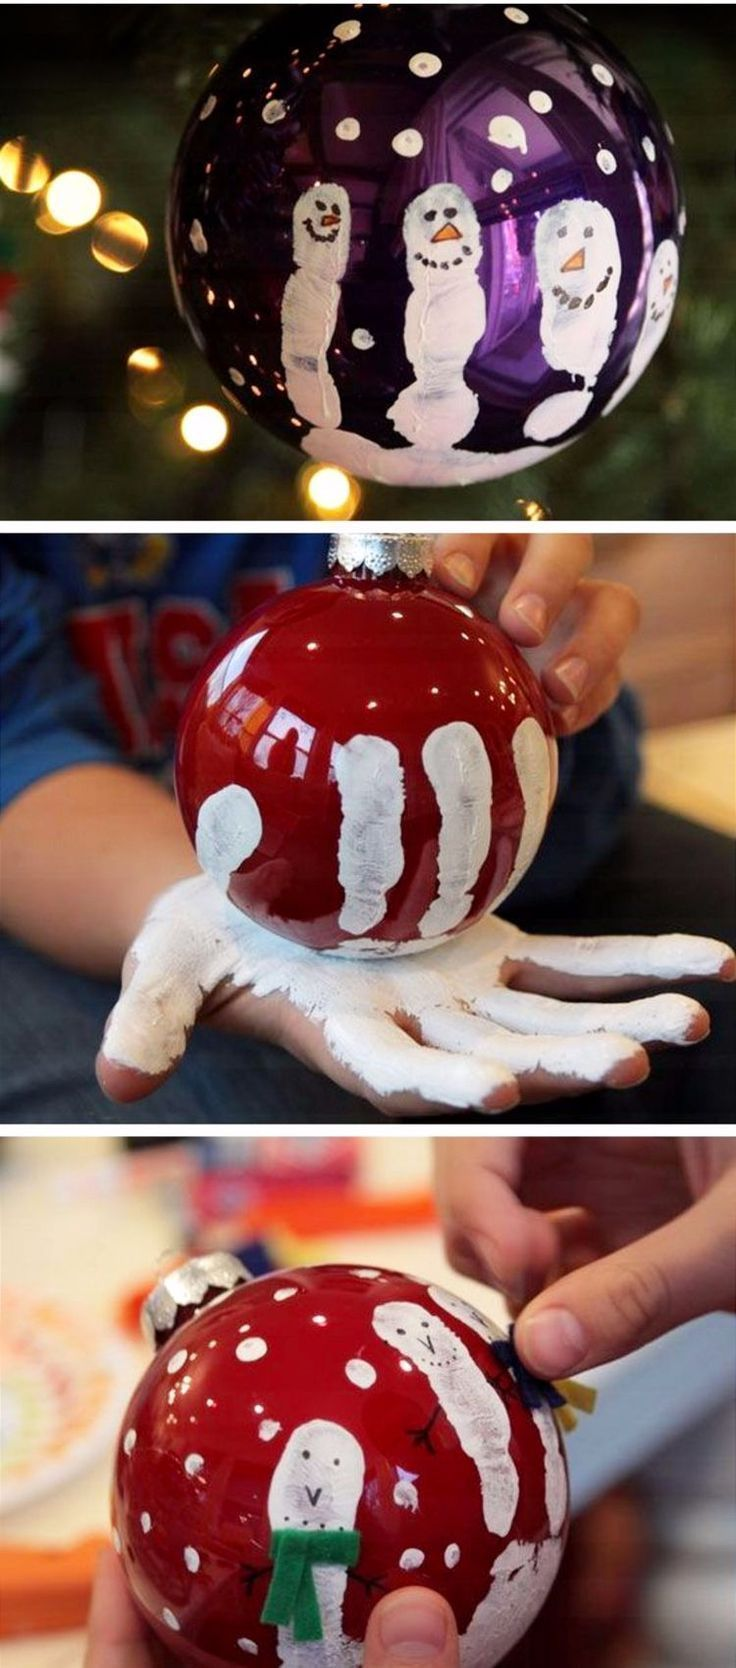 DIY Christmas Craft Ideas for Kids - Easy Handprint Ornament for kids to make #craftideasforkidseasy #Christmas #Craft #Crafts #Diy #easy #Kids #Projects